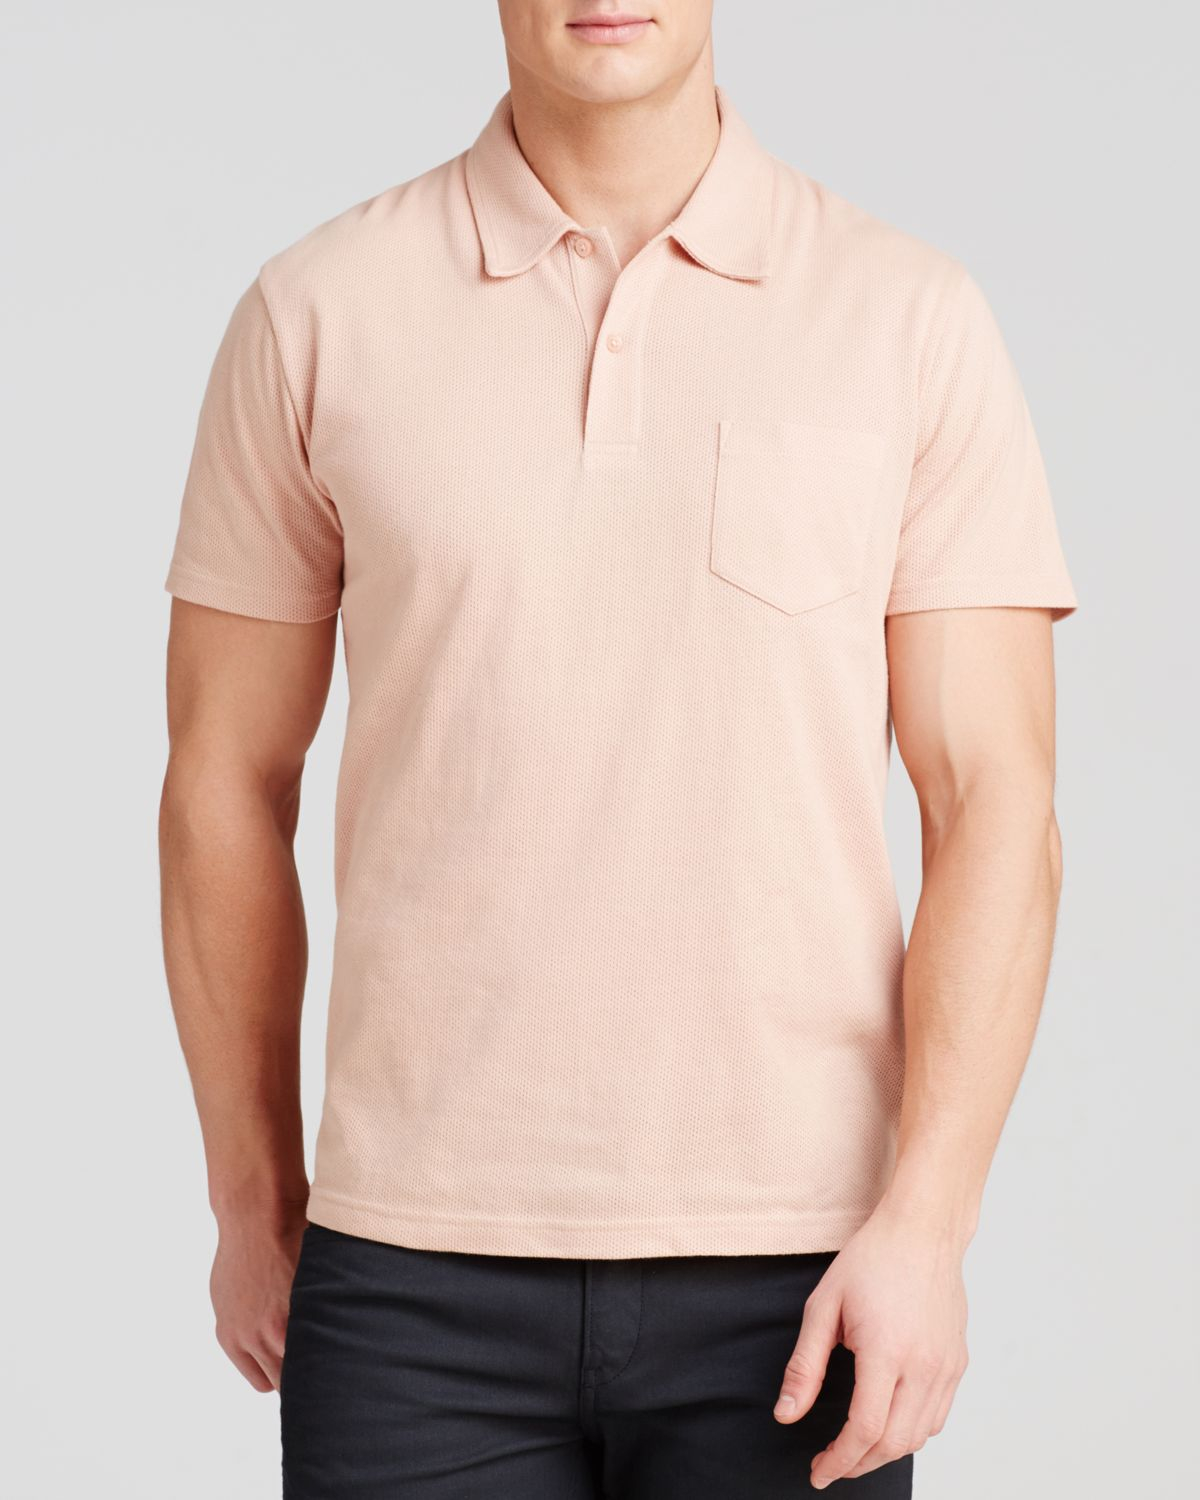 The cotton store clothing